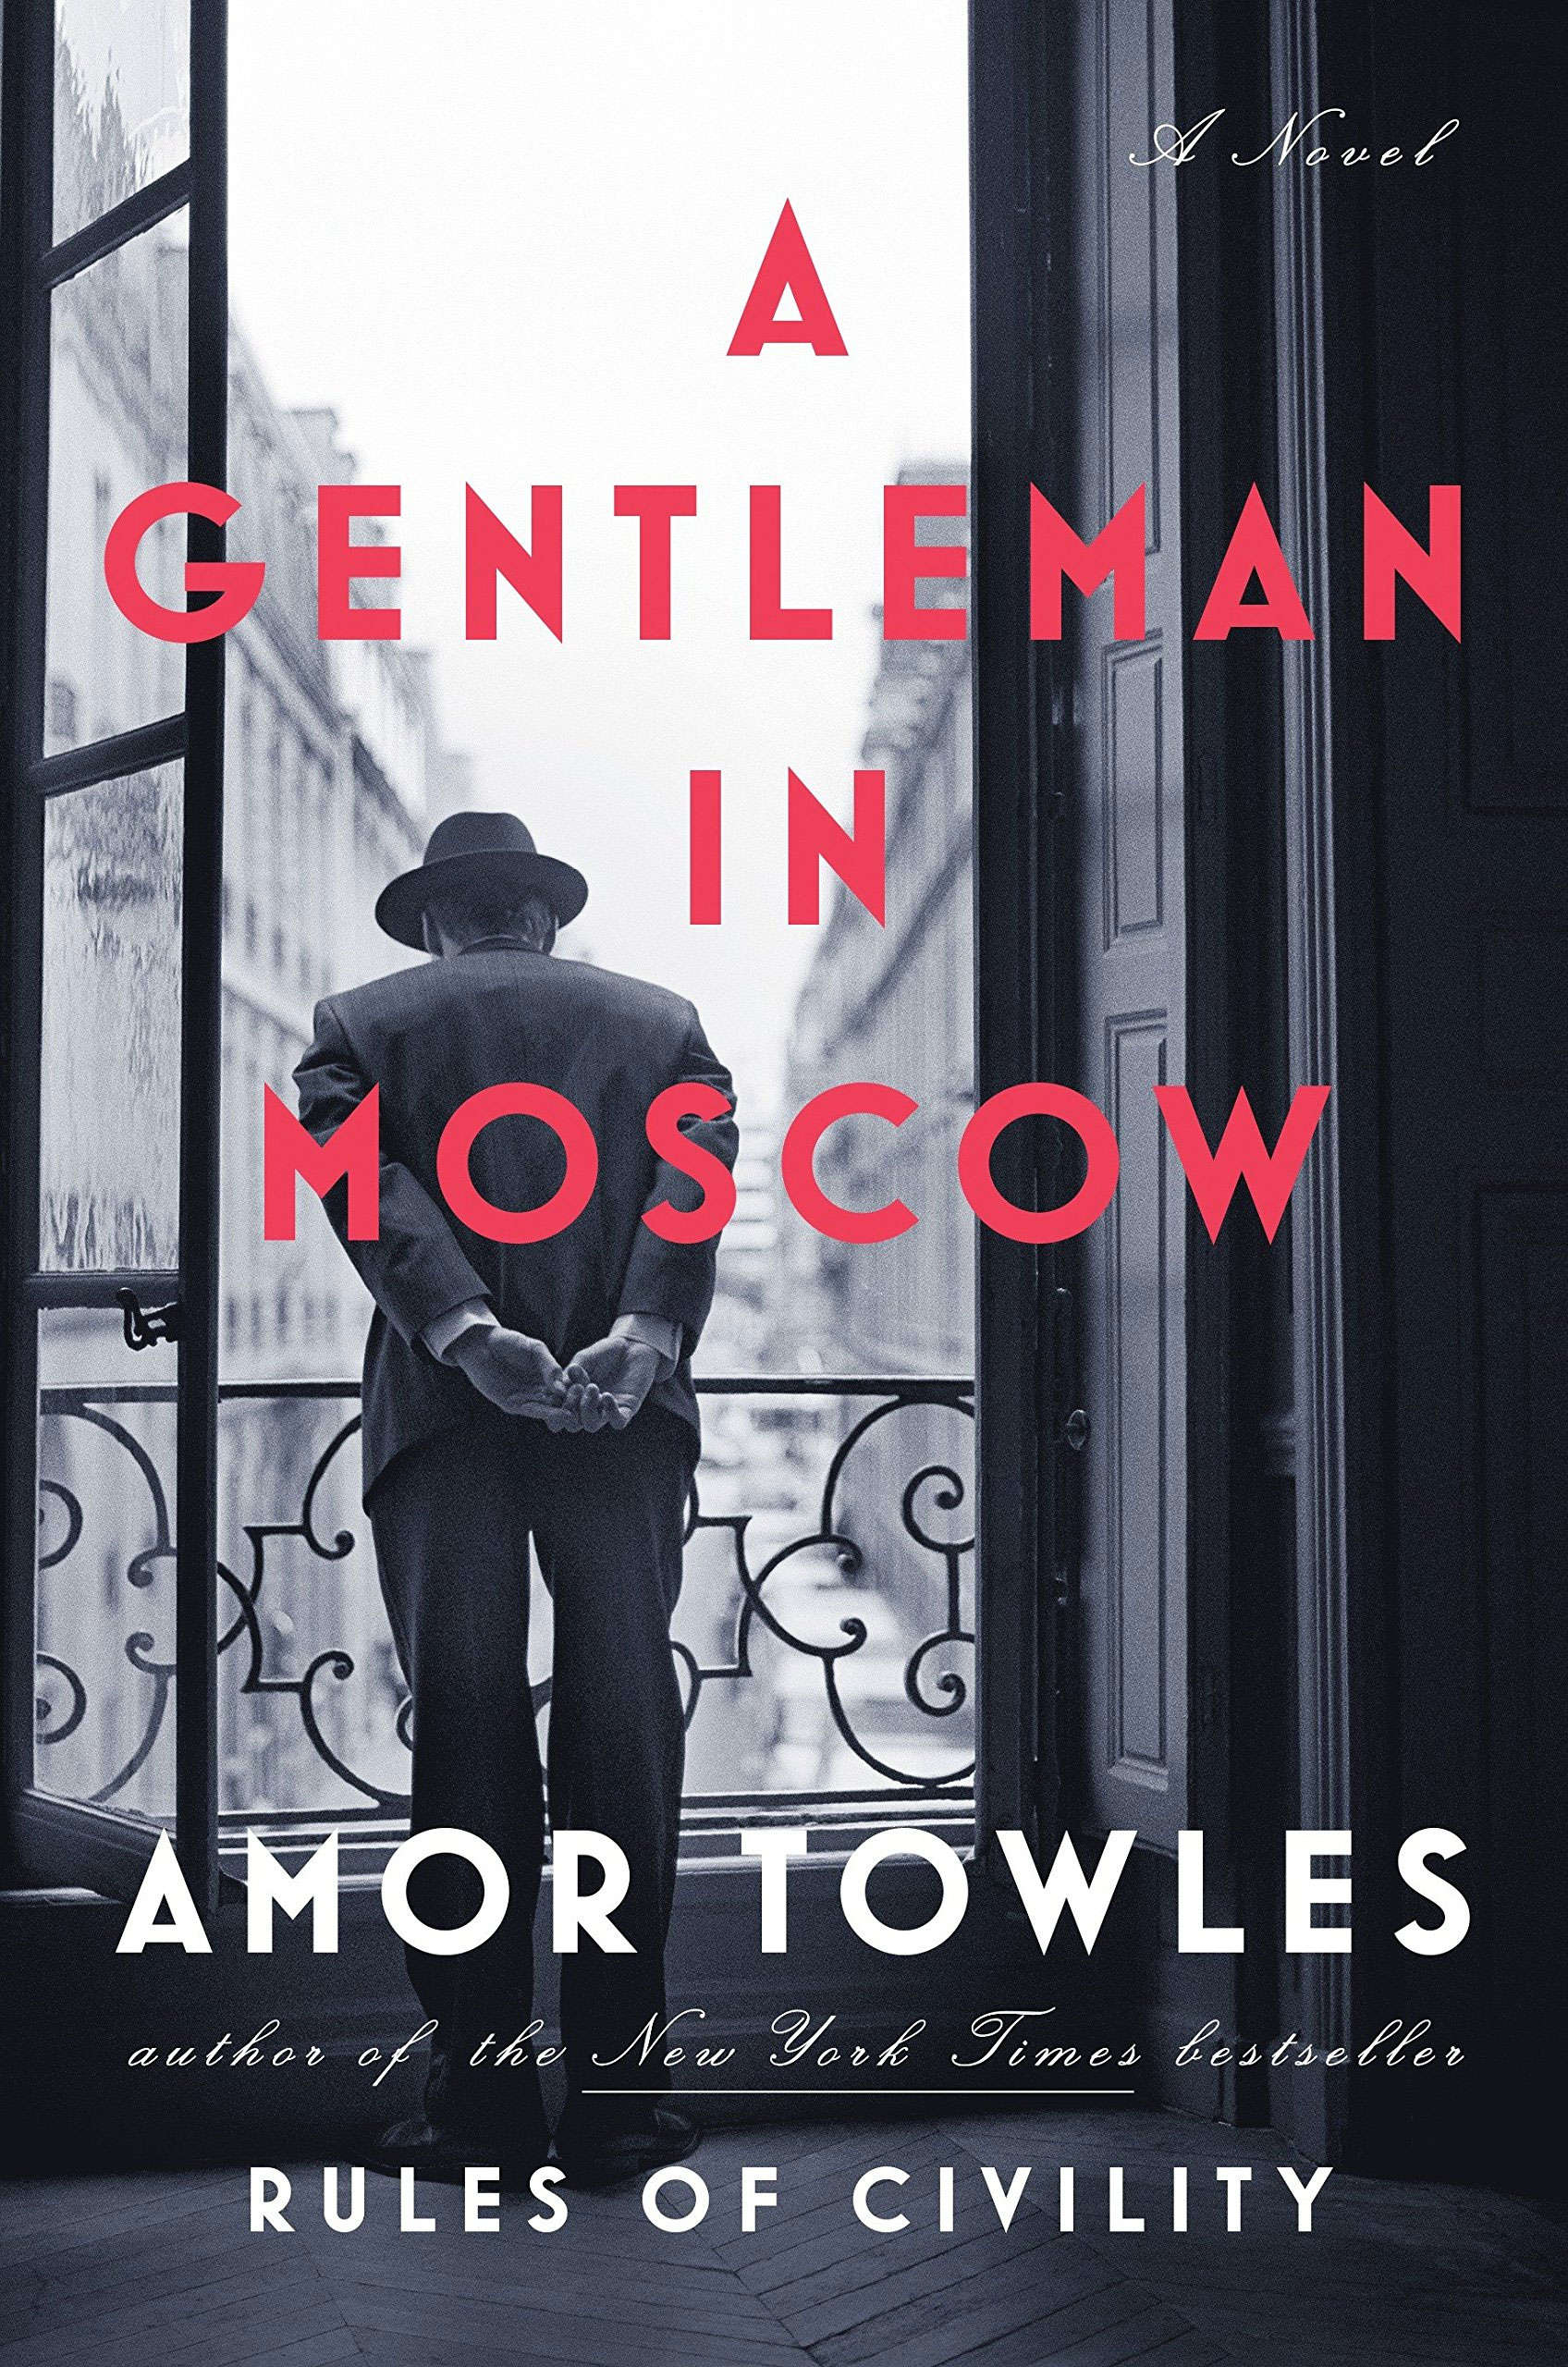 'A Gentleman in Moscow' by Amor Towles